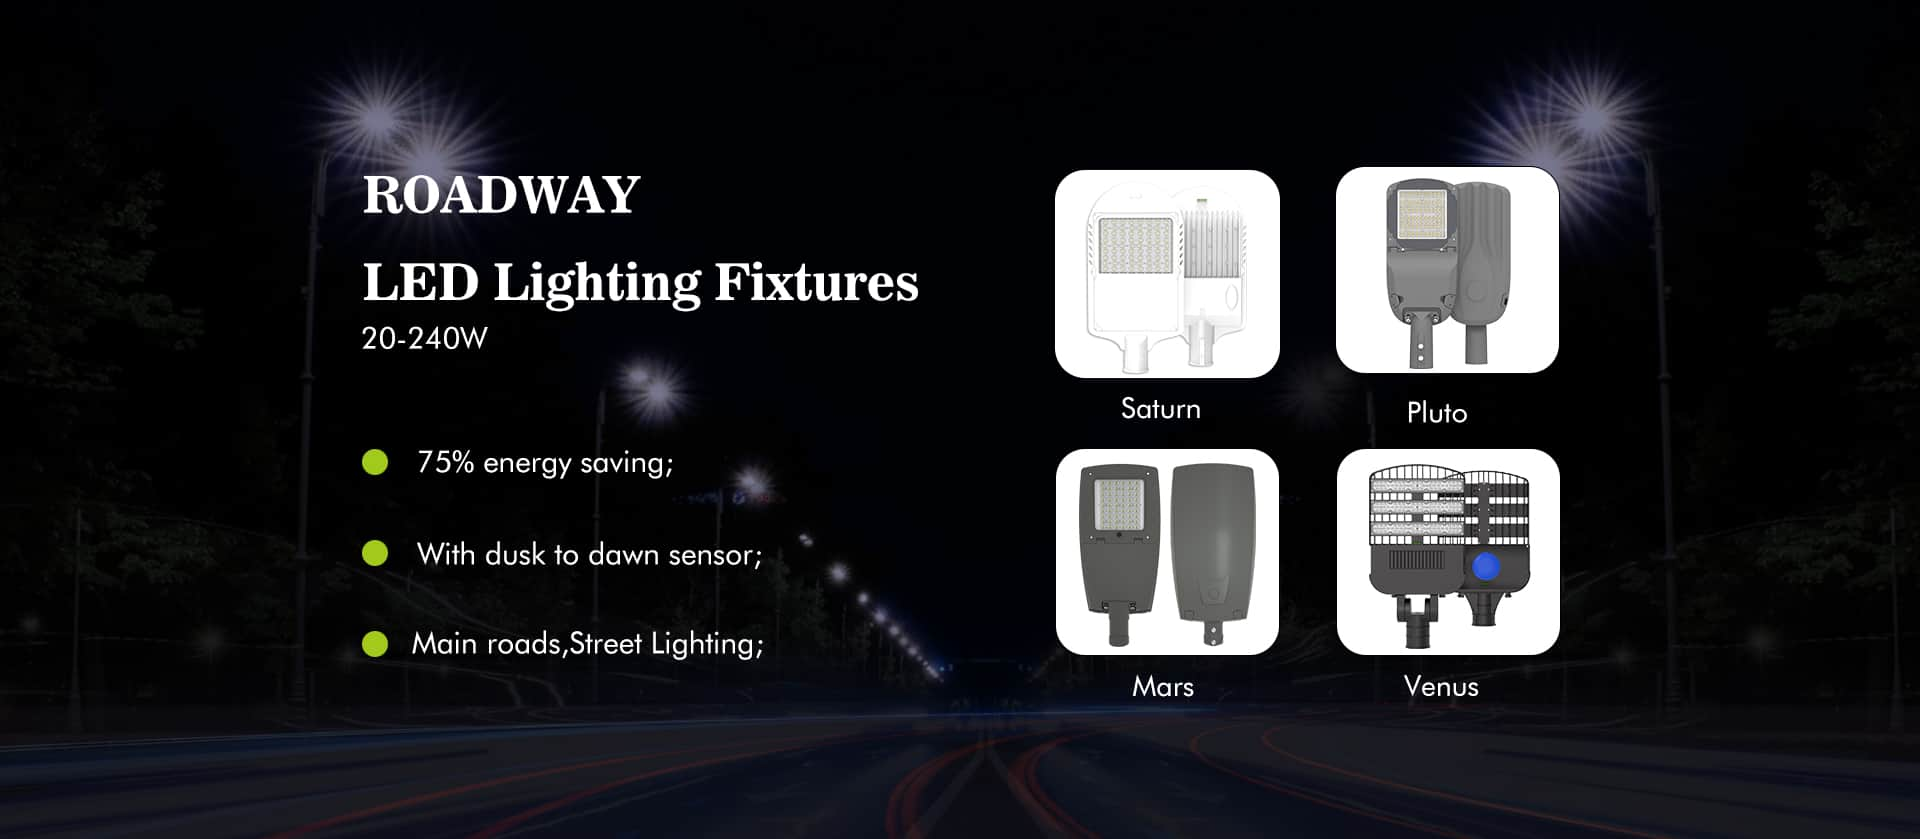 led roadway lighting fixtures